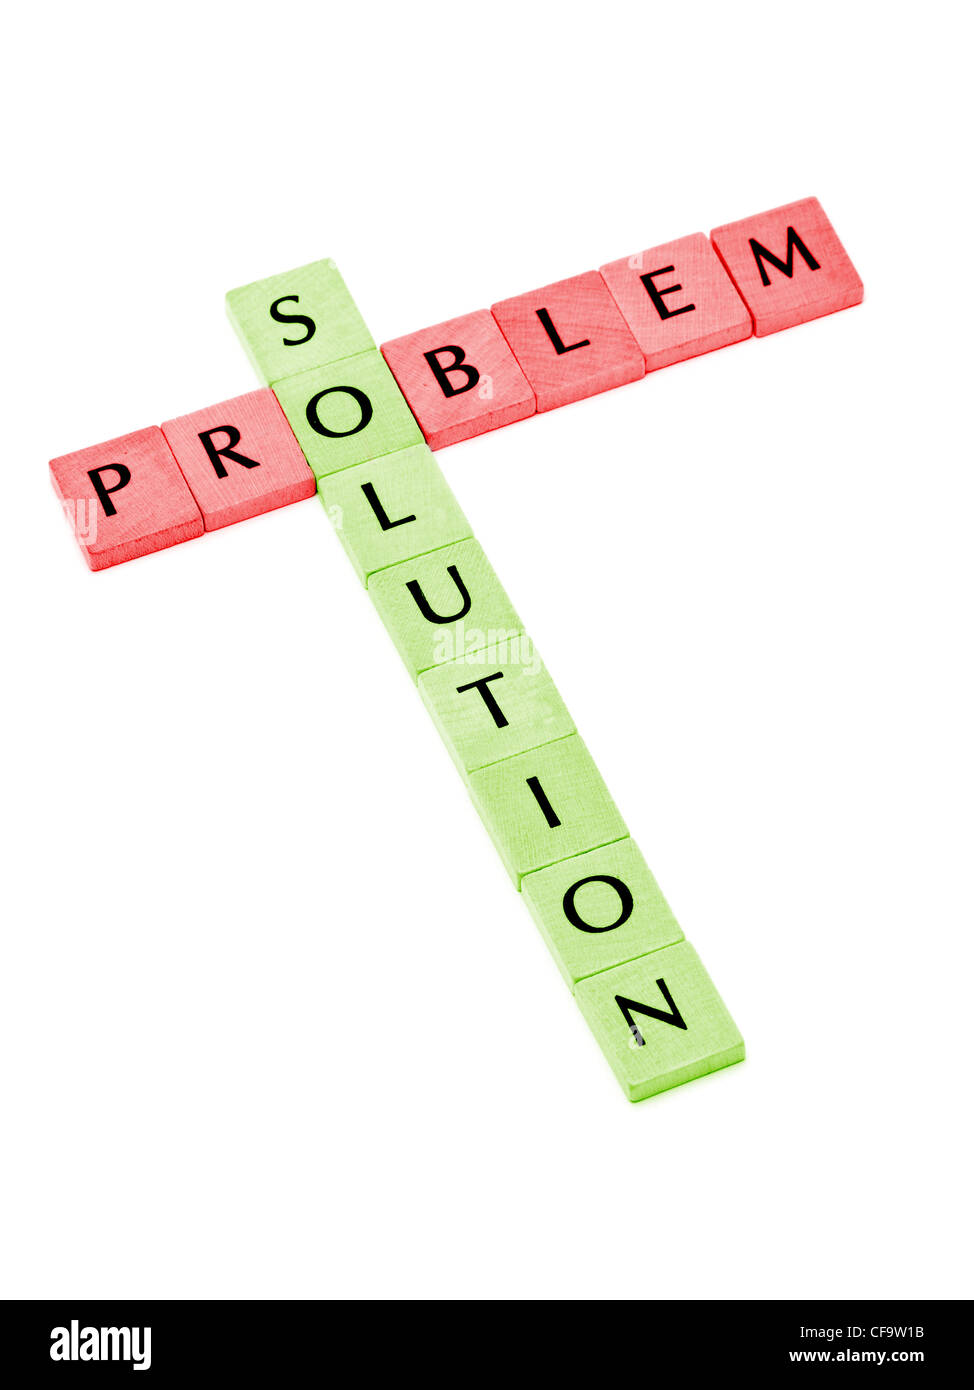 Building solution from problem over white background - Stock Image